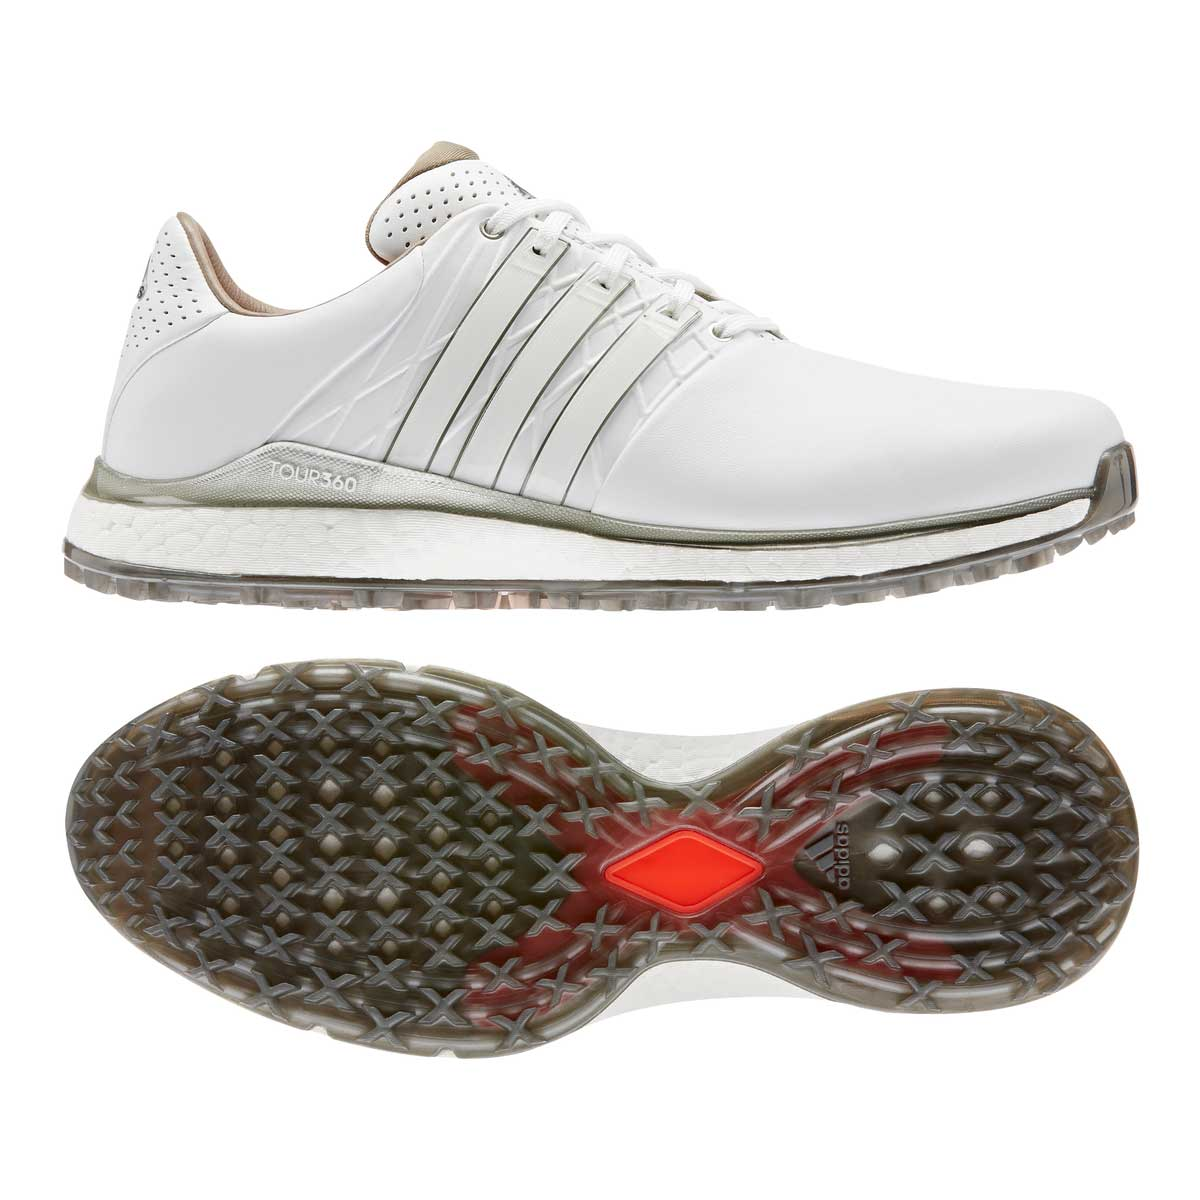 Adidas Men's TOUR360 XT-SL 2.0 White/Silver Spikeless Golf Shoes